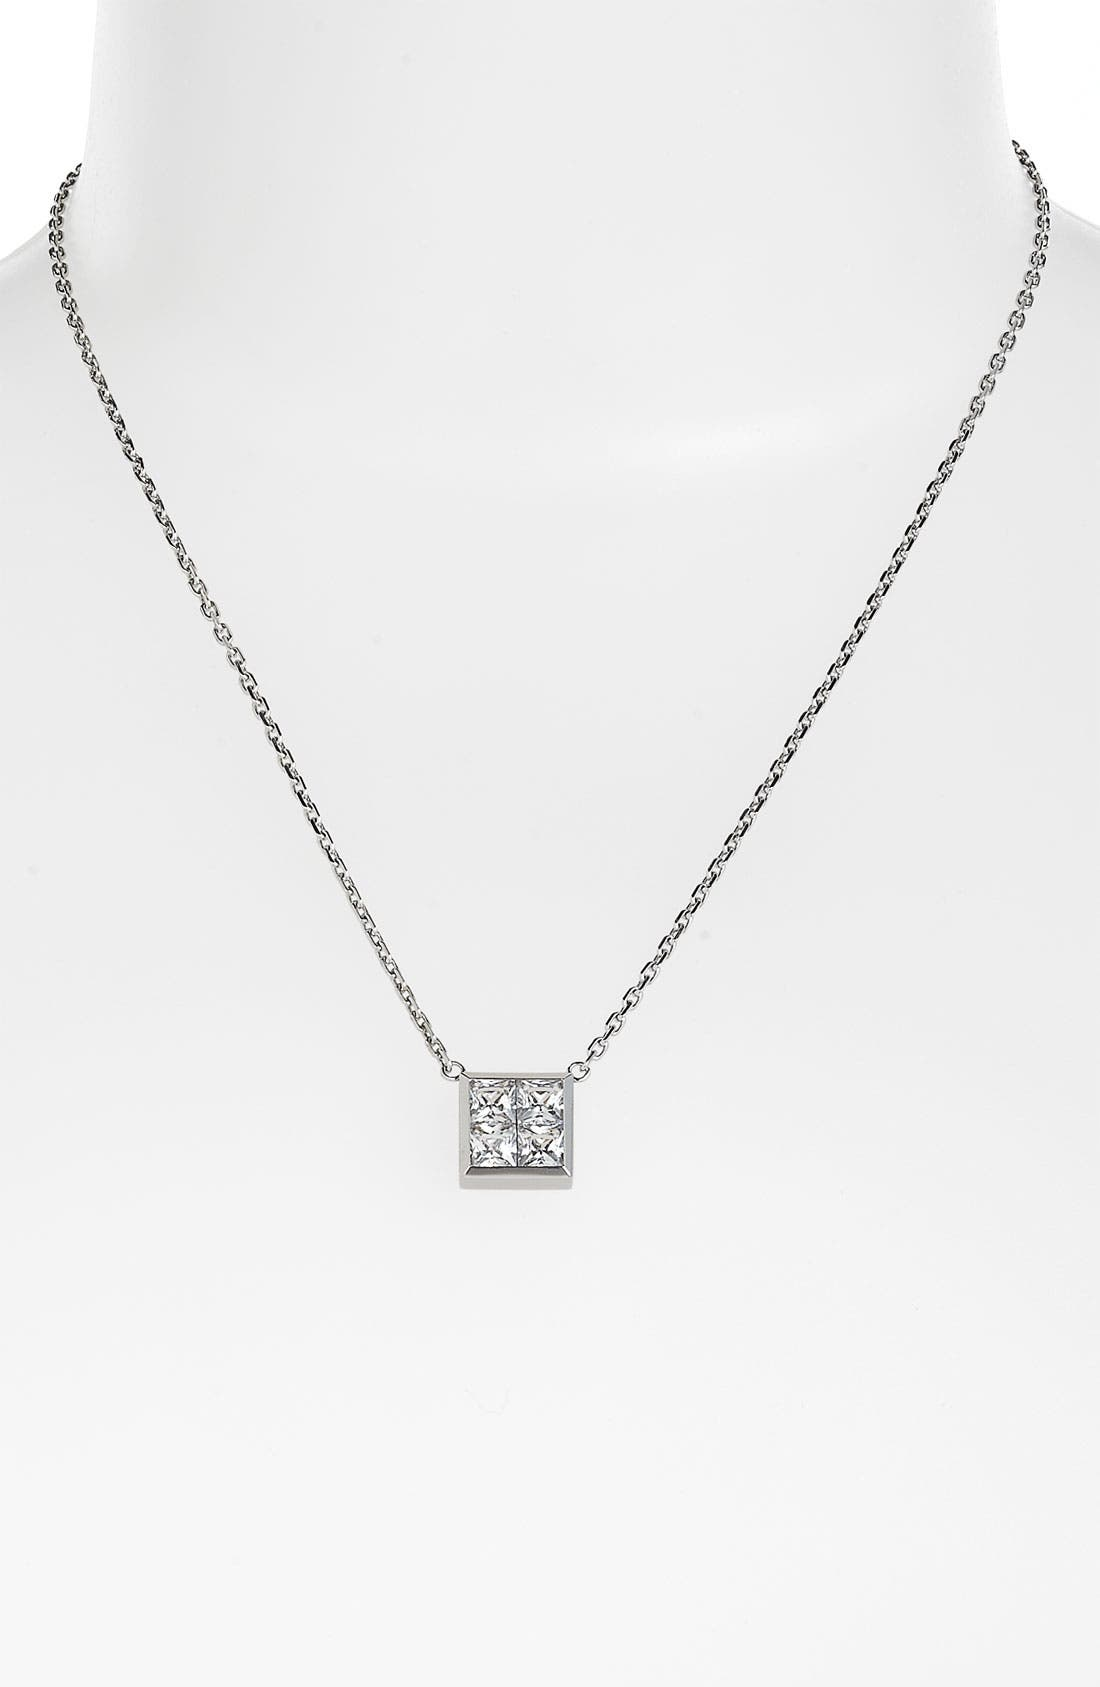 Alternate Image 1 Selected - Michael Kors 'Very Hollywood' Pendant Necklace